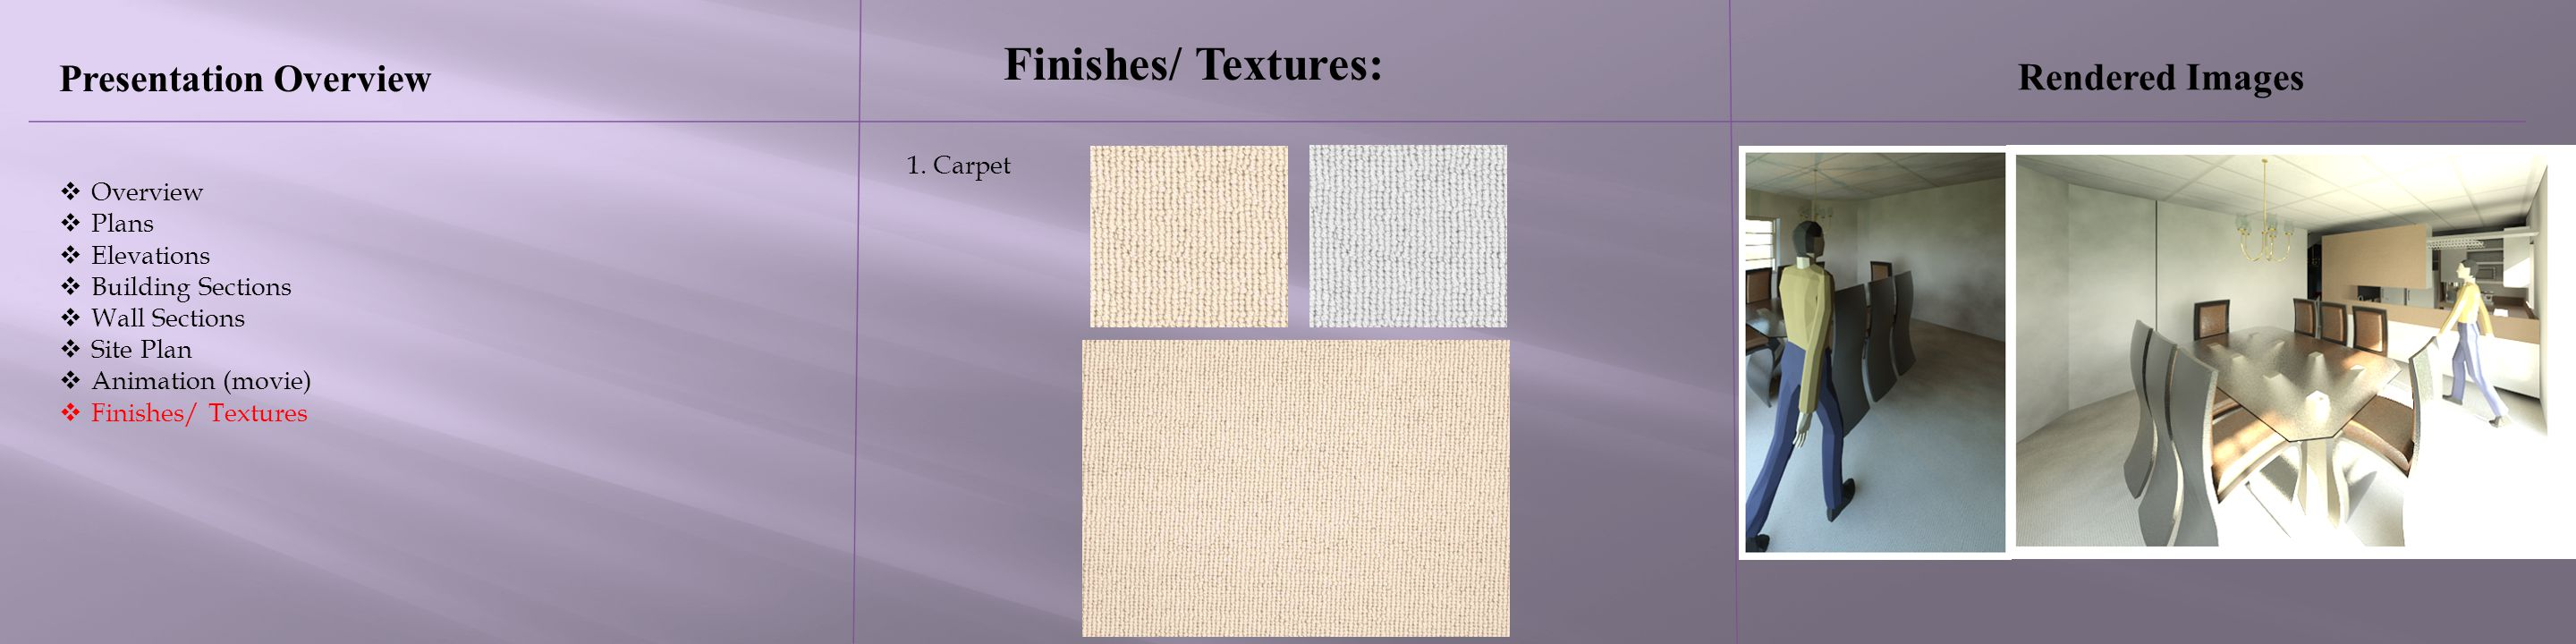 Finishes/ Textures: Presentation Overview Rendered Images 1. Carpet